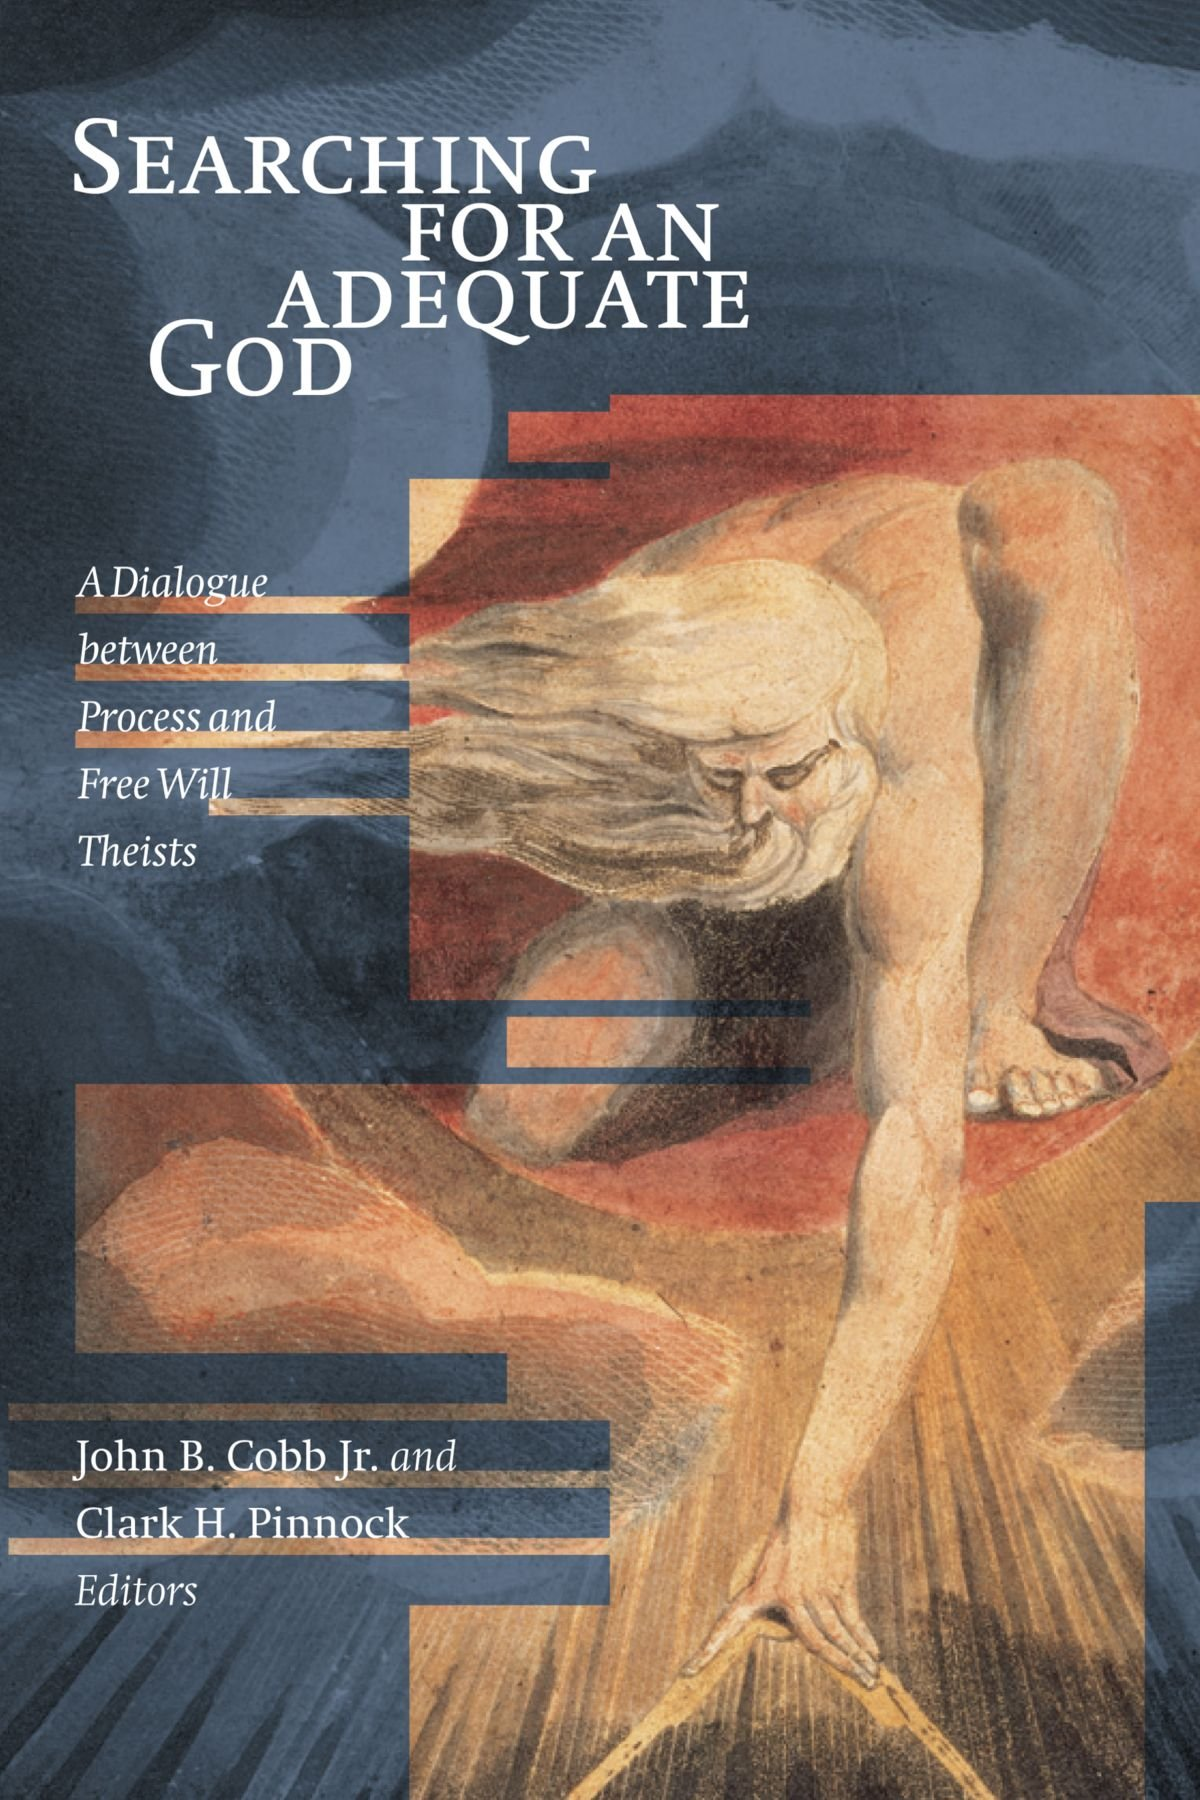 Searching for an Adequate God: A Dialogue between Process and Free Will Theists pdf